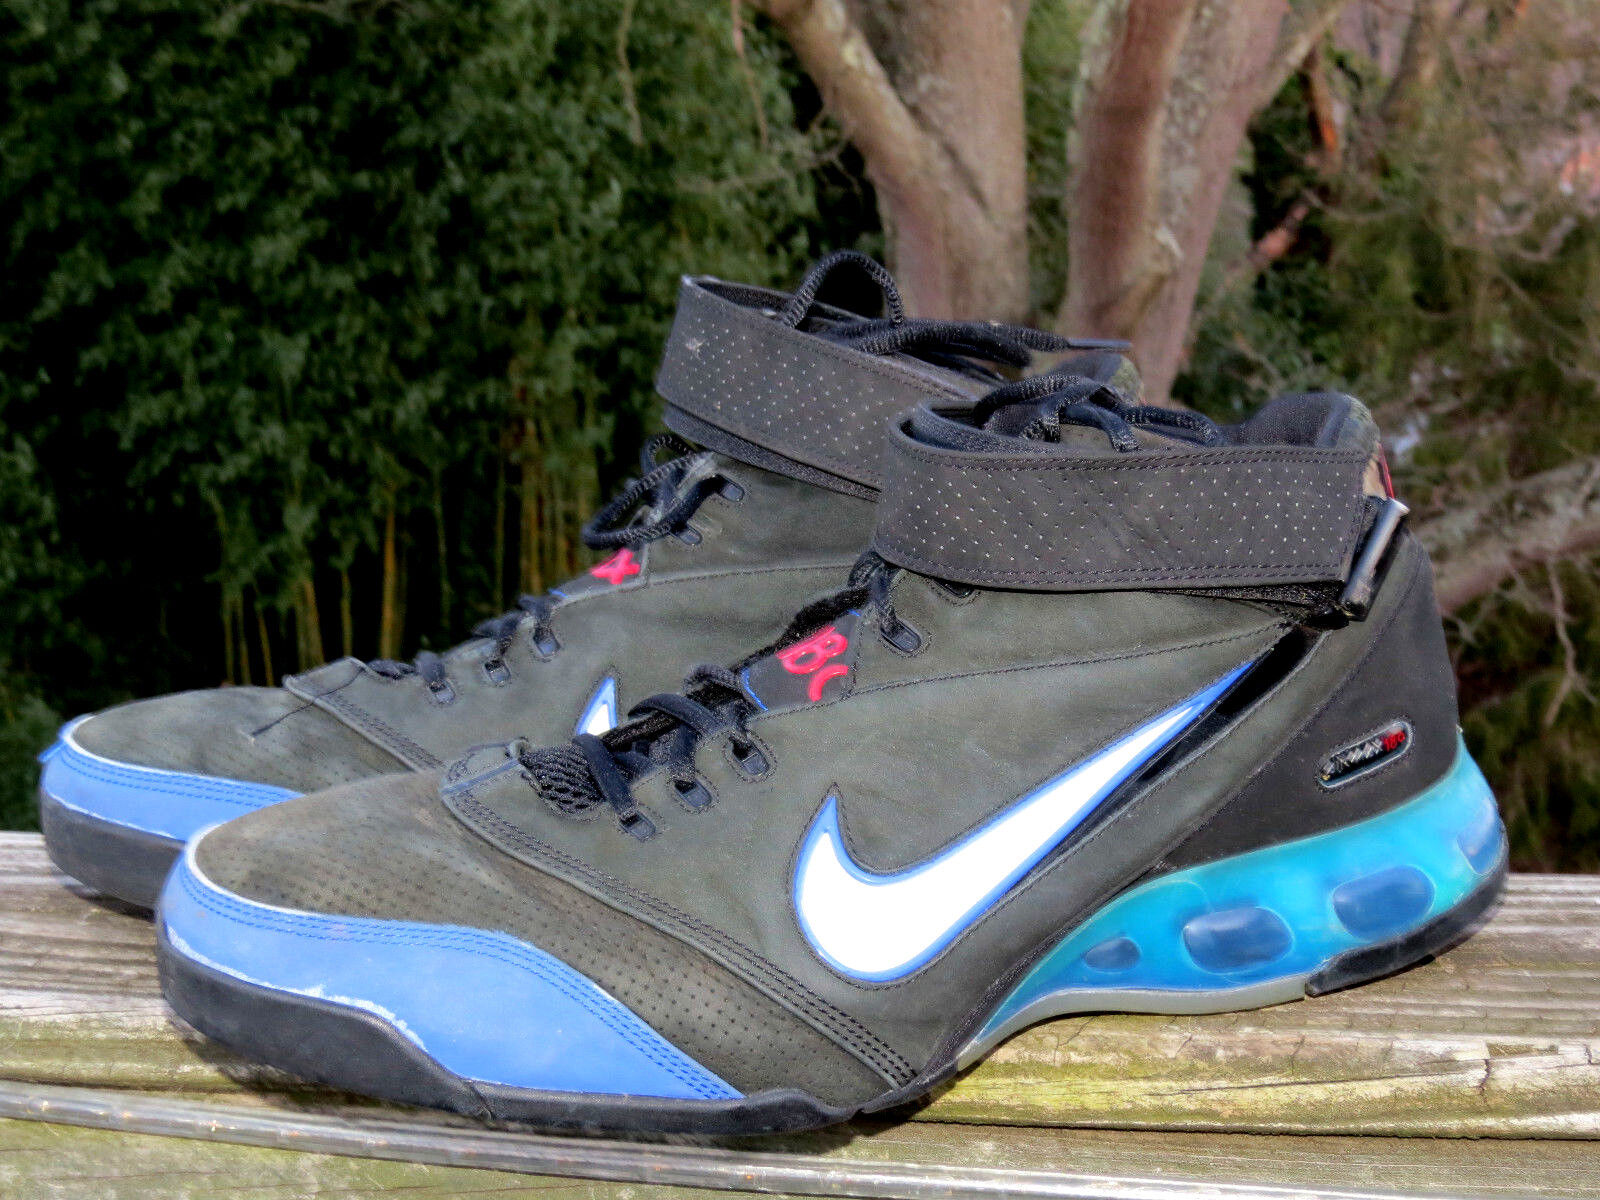 quality design 157af e6f6d ... NIKE AIR MAX Tempo Uptempo Barkley 180 180 180 Pippen Penny Retro Mens  Shoes Size 18 ...